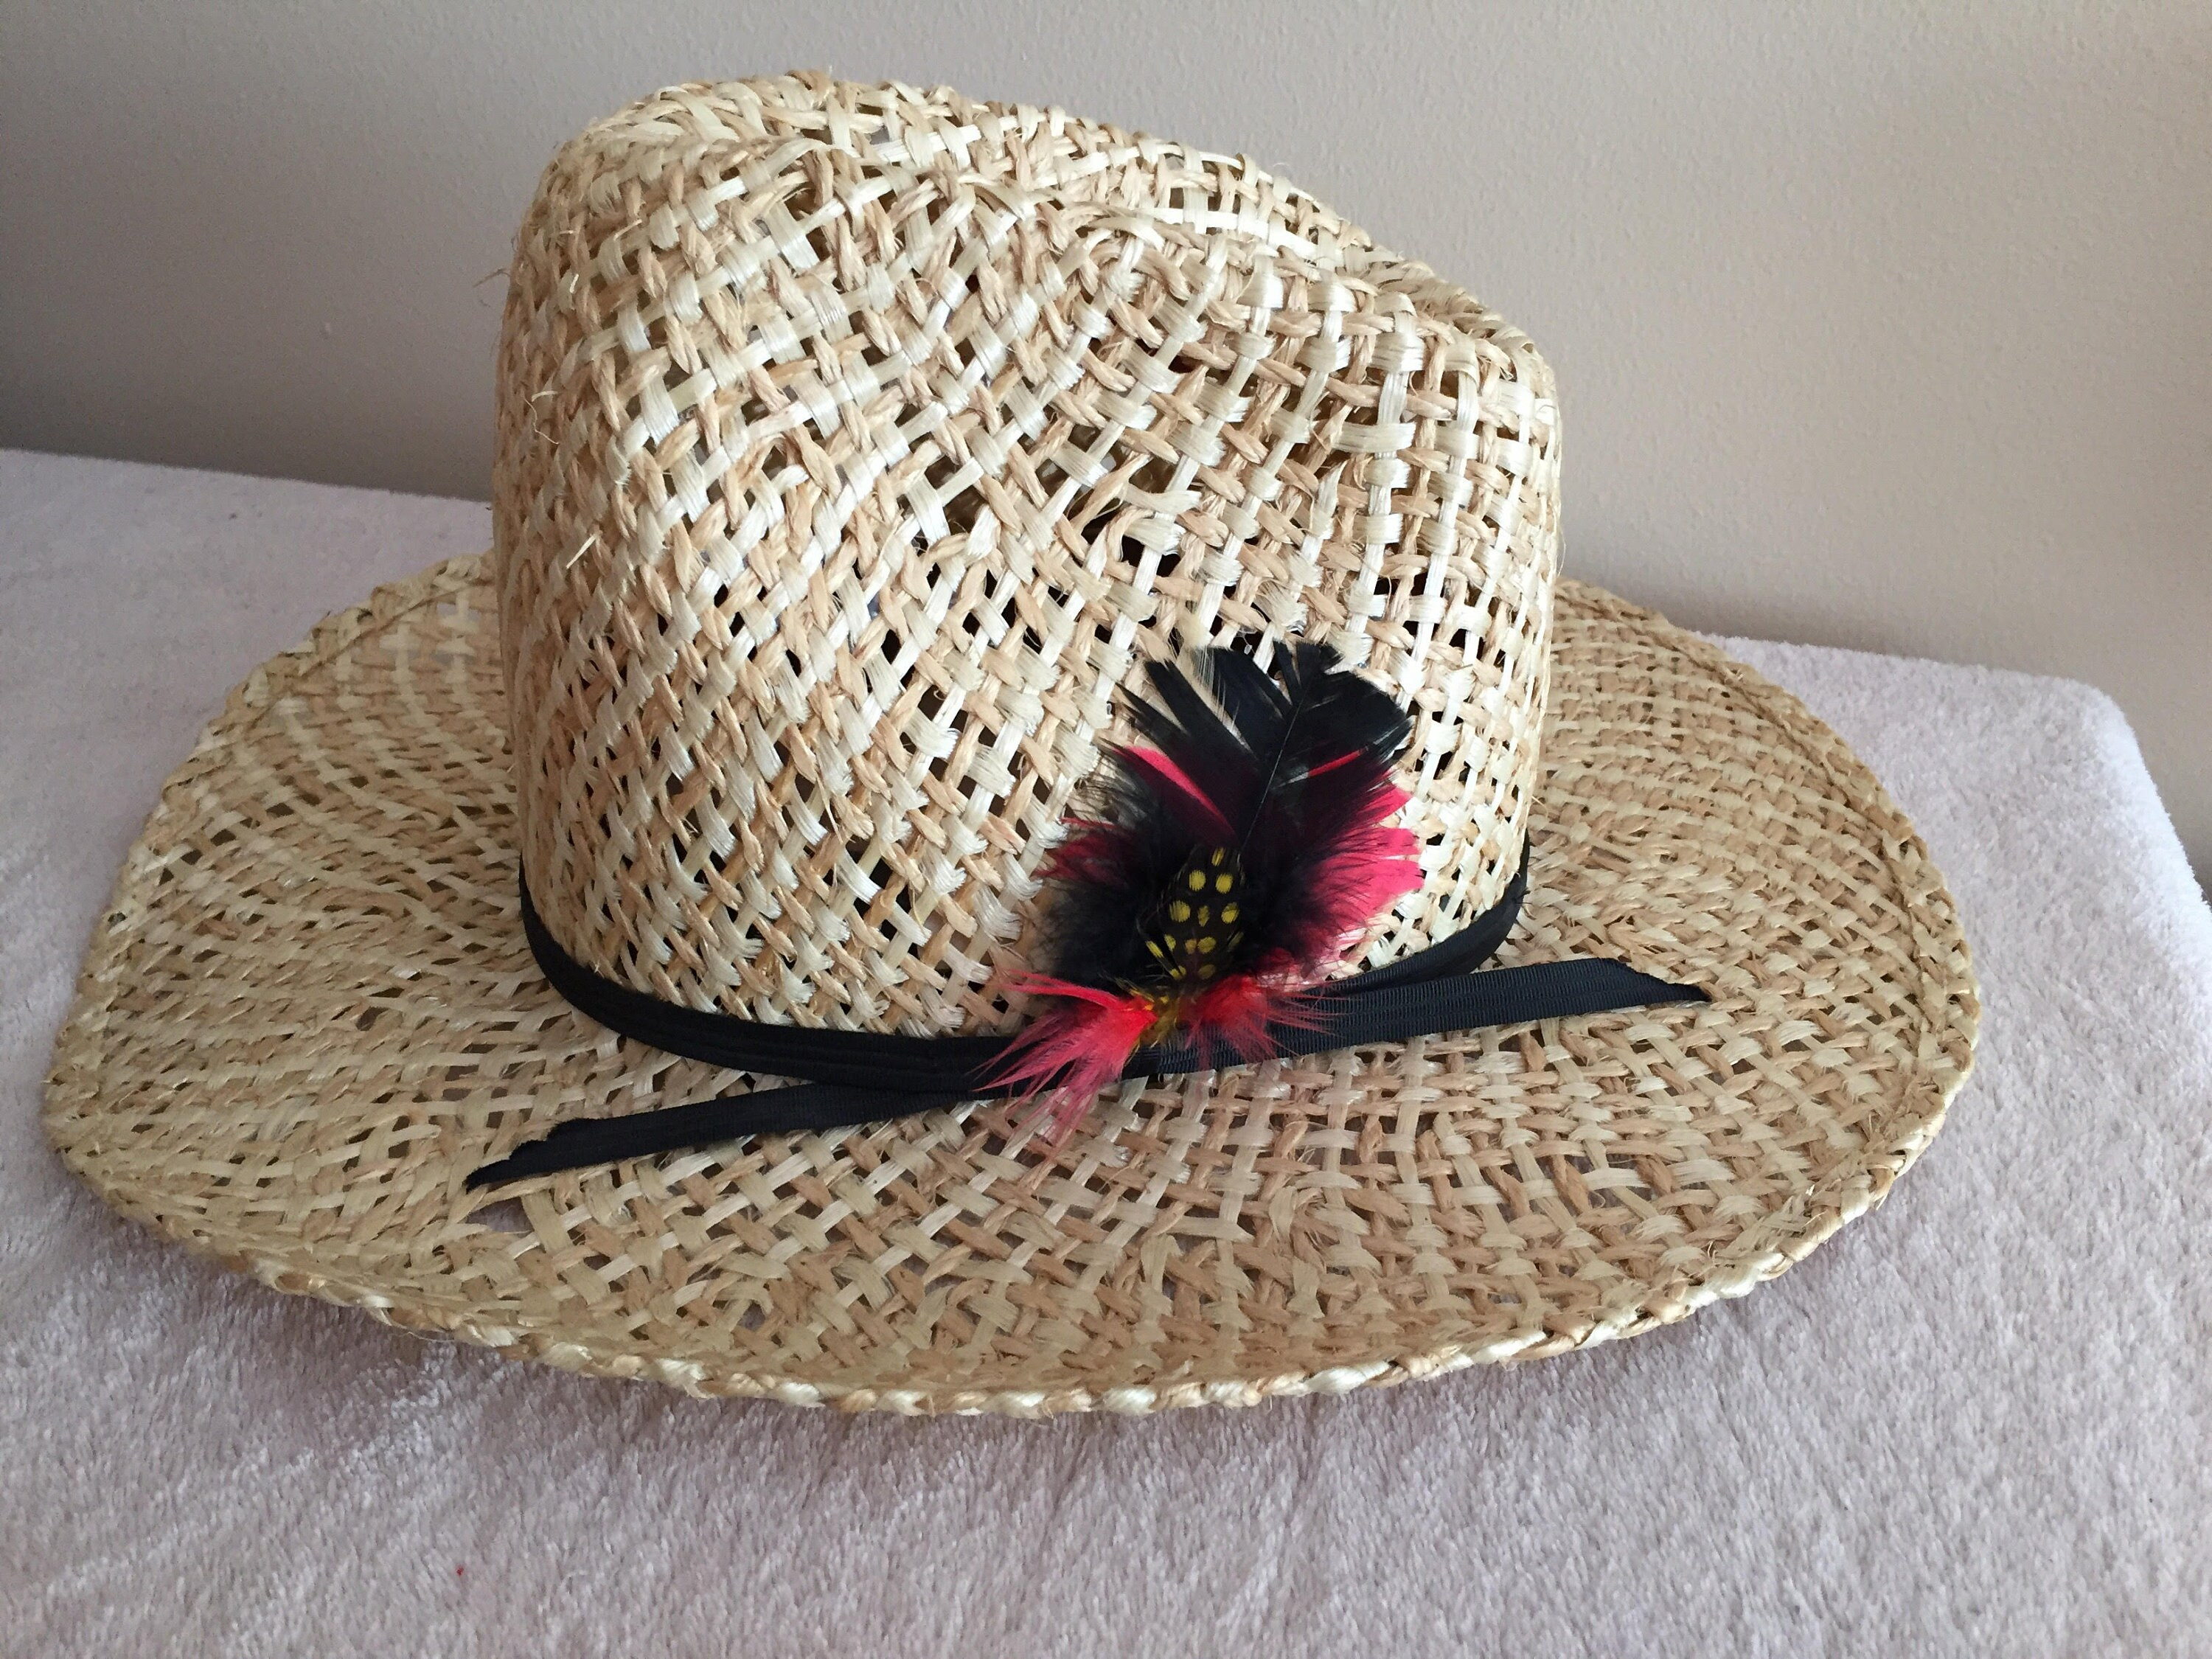 Bailey U Rollit Youth Straw Cowboy Hat Feathered Size 6 1 2  4a6d059541f